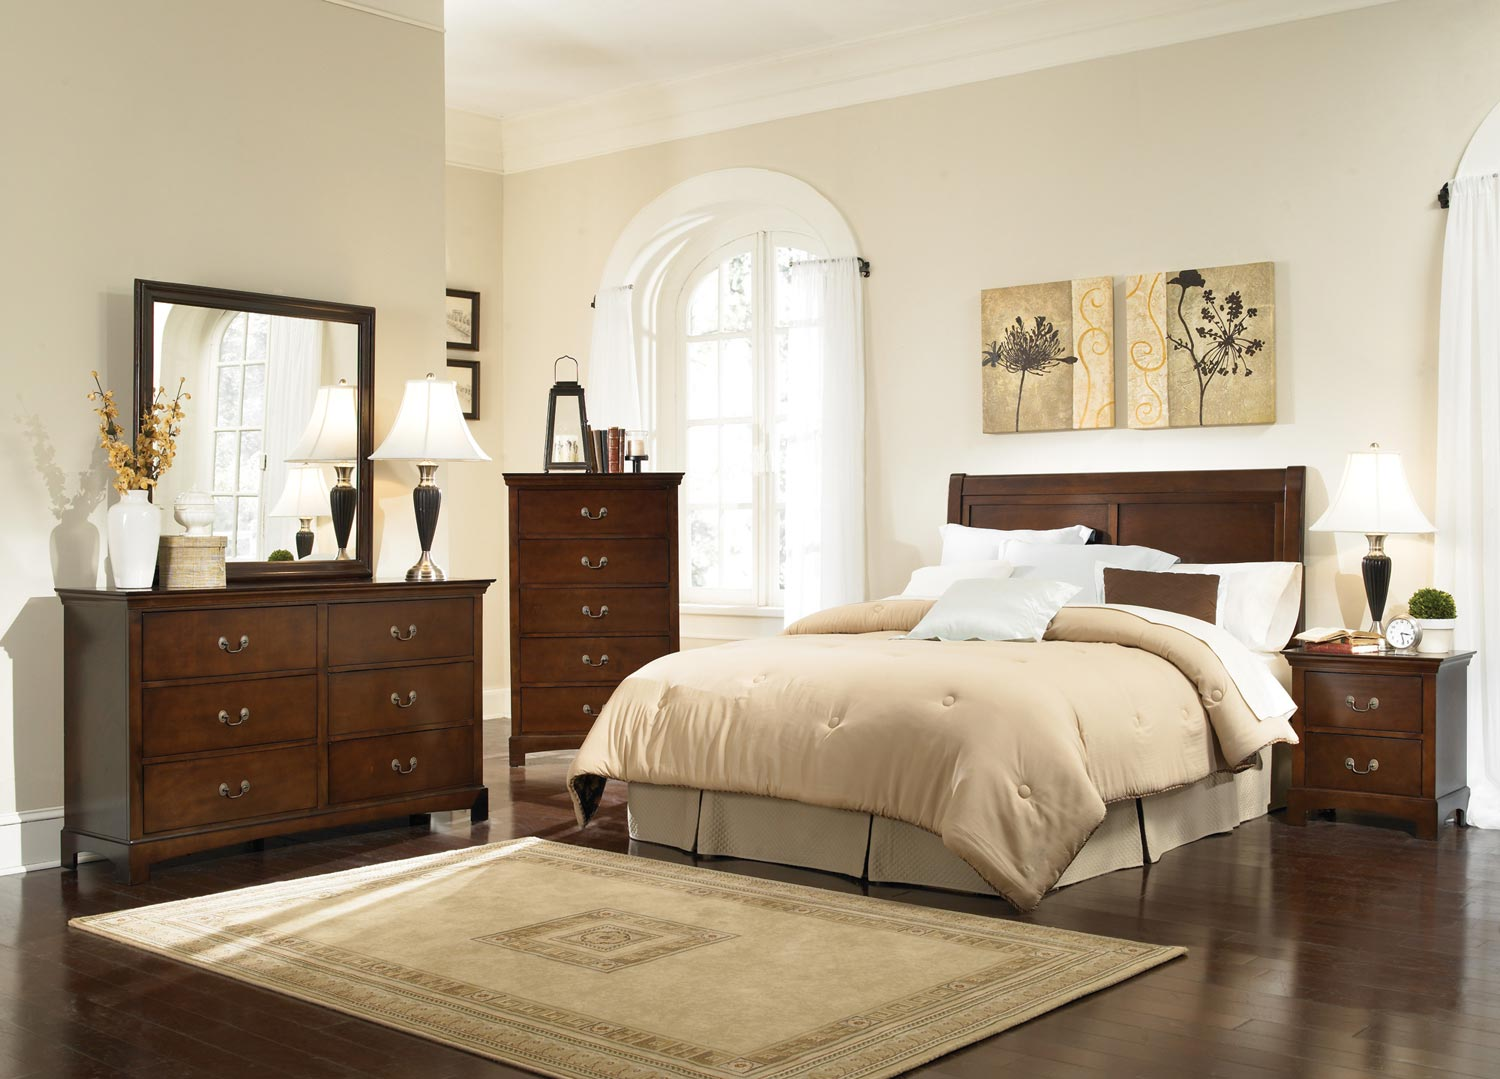 Coaster Tatiana Bedroom Set - Espresso 202391-Bed-Set at Homelement.com